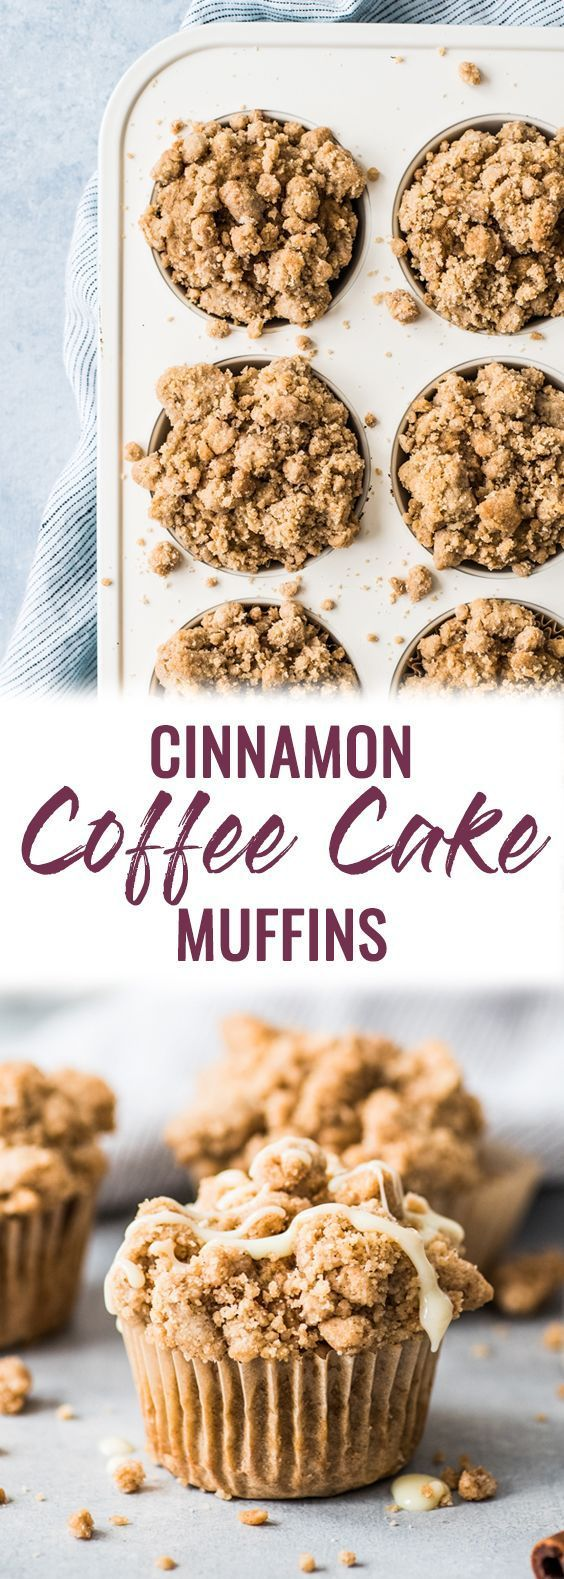 These cinnamon coffee cake muffins topped with a crunchy streusel topping are made with Greek yogurt for a healthier homemade treat! #coffeecake #muffins #greekyogurt